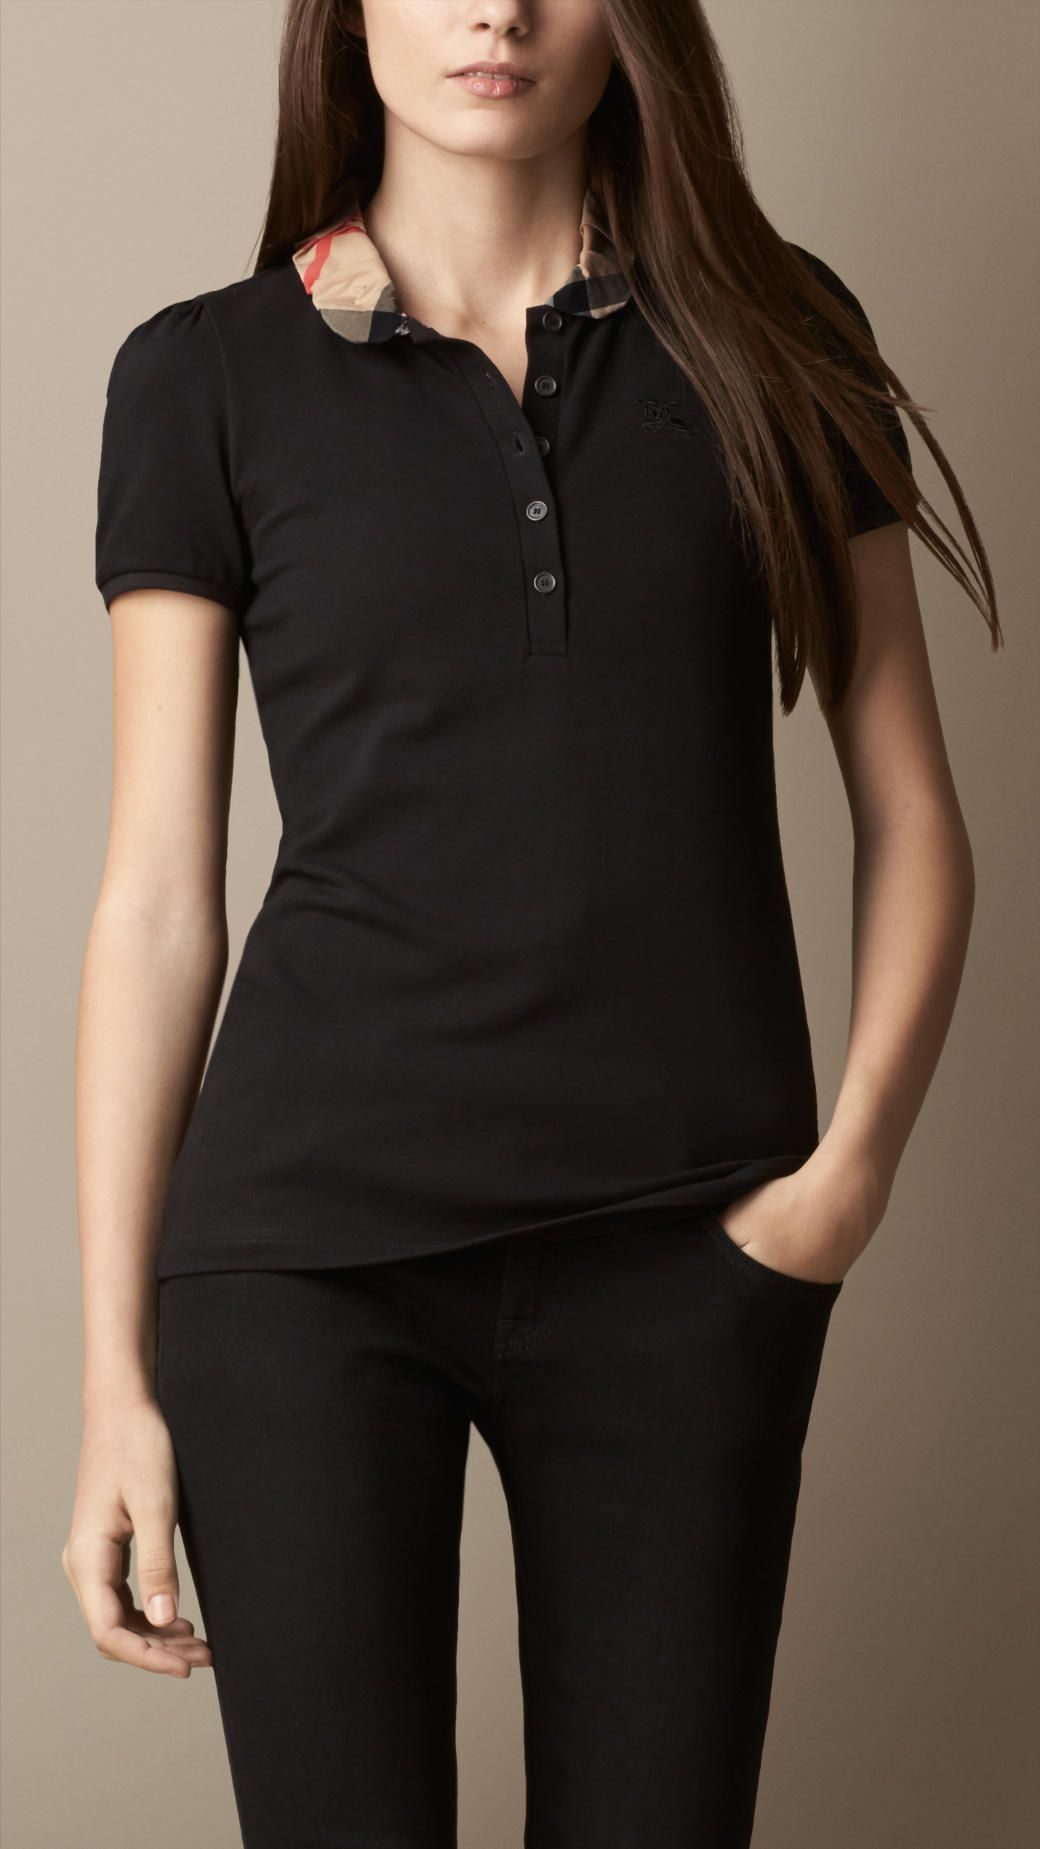 d4806bbecf Women's Clothing in 2019 | Clothes | Burberry polo shirt, Shirts ...